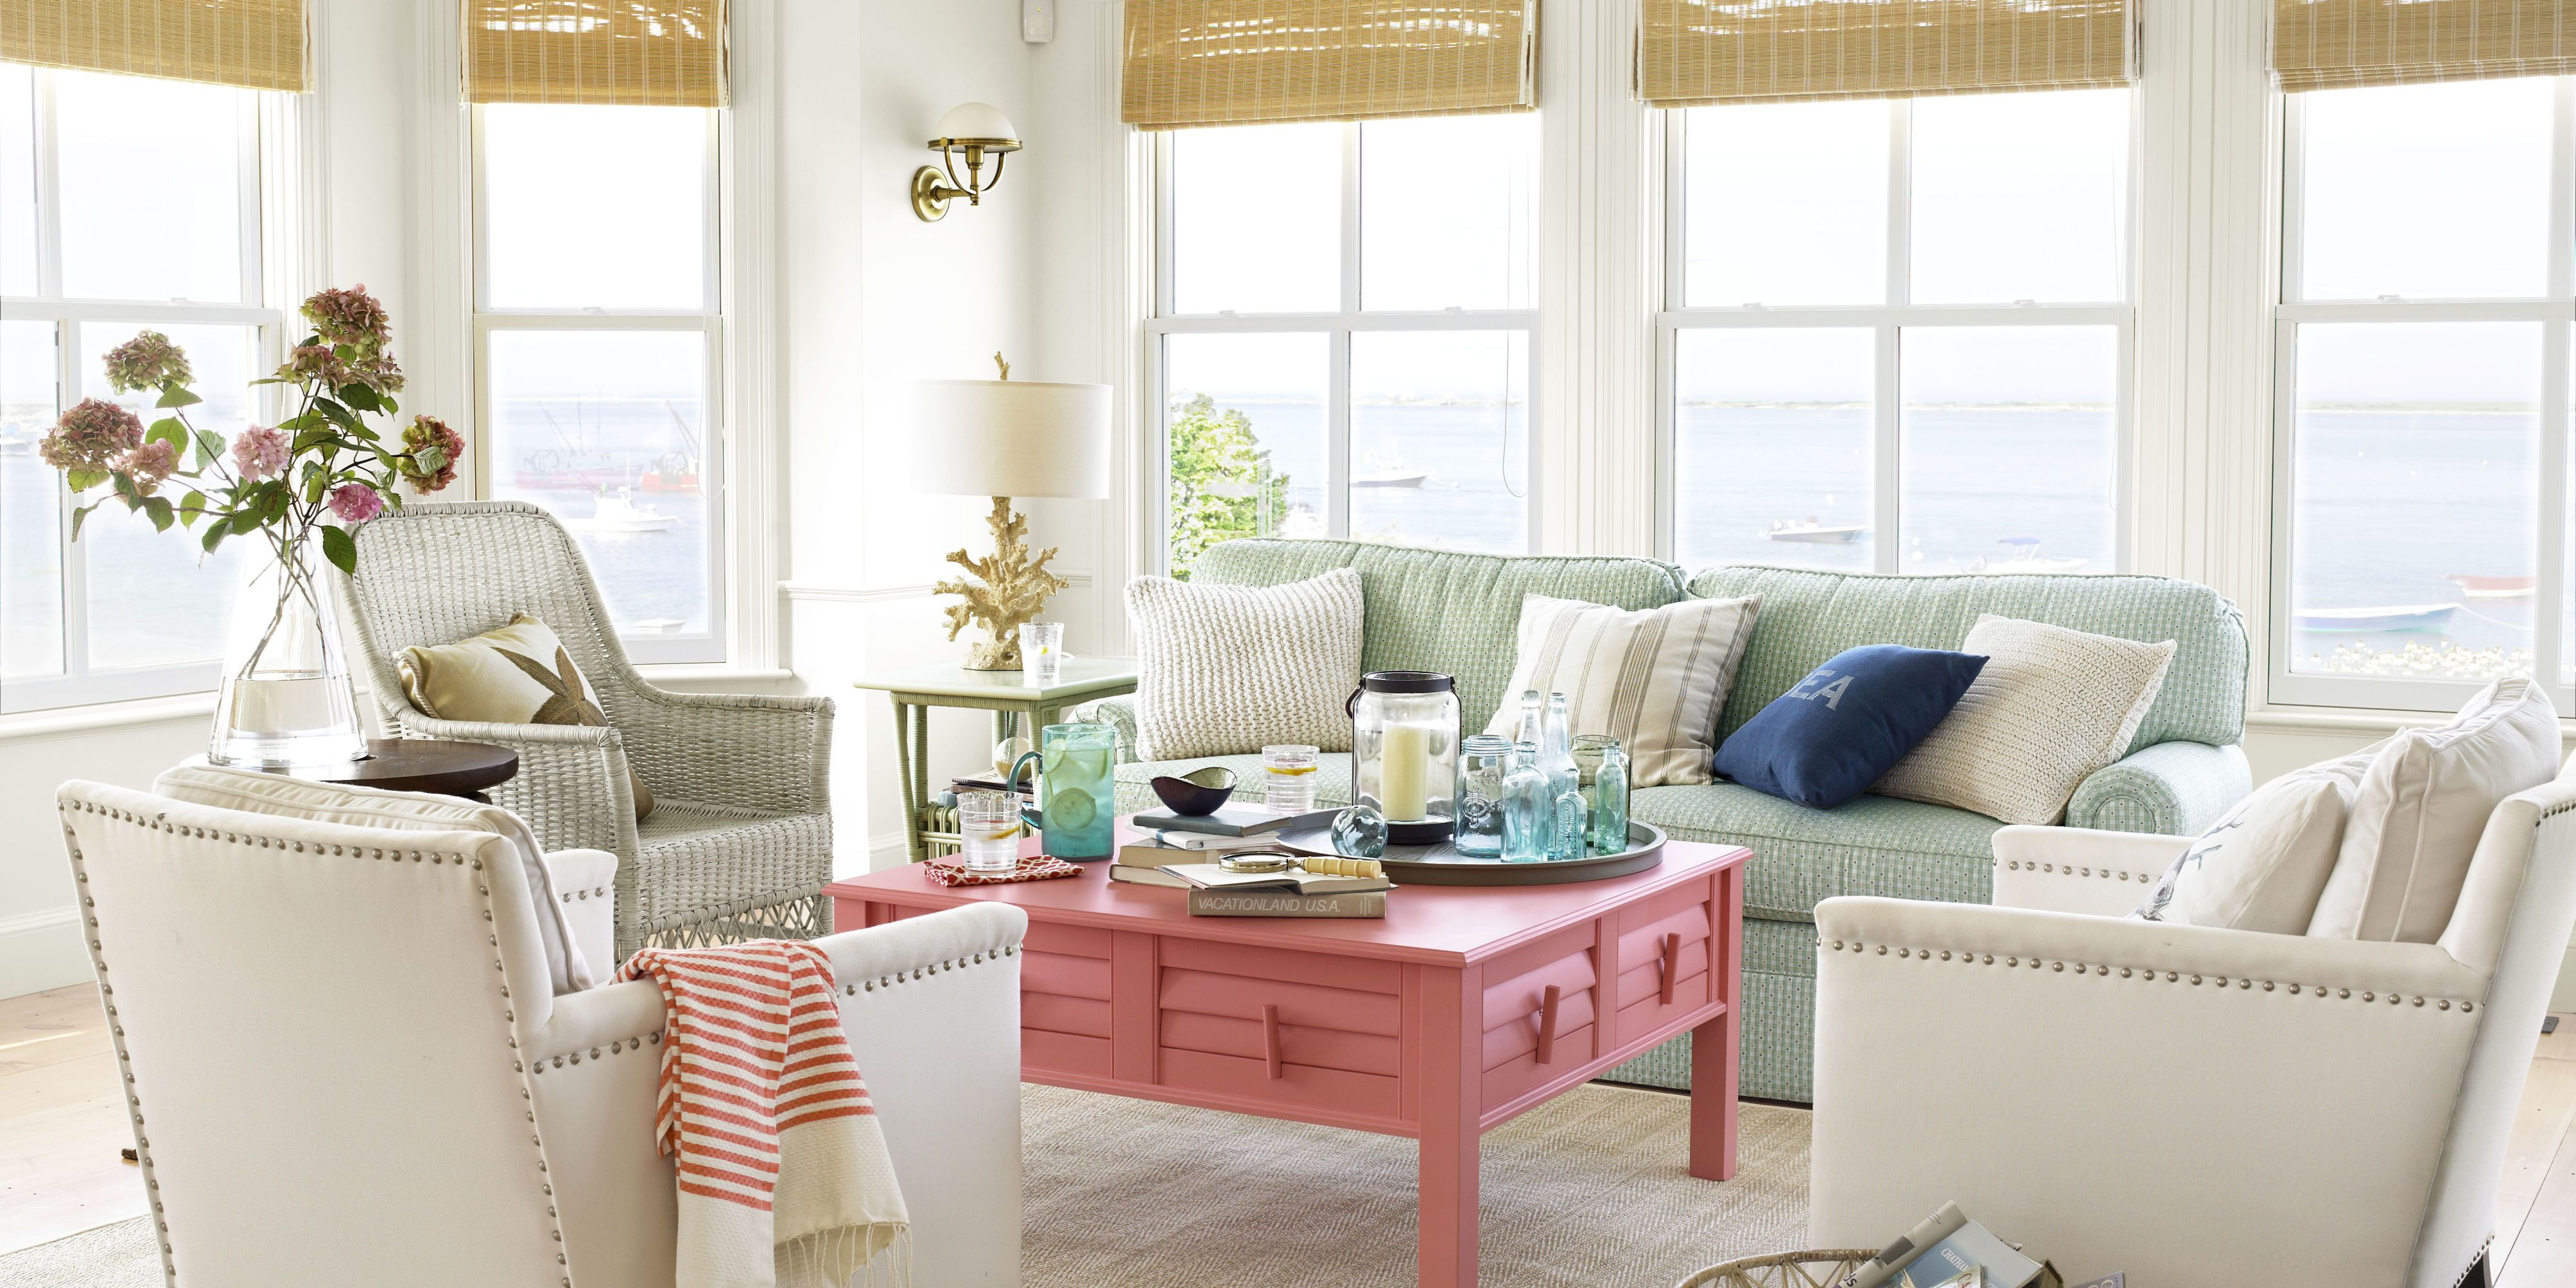 Ordinaire Whether You Live By The Beach Or Just Dream About Ocean Breezes, Enhance  The Natural Beauty Of Your Home With Crisp White, Splashes Of Bold Color,  ...